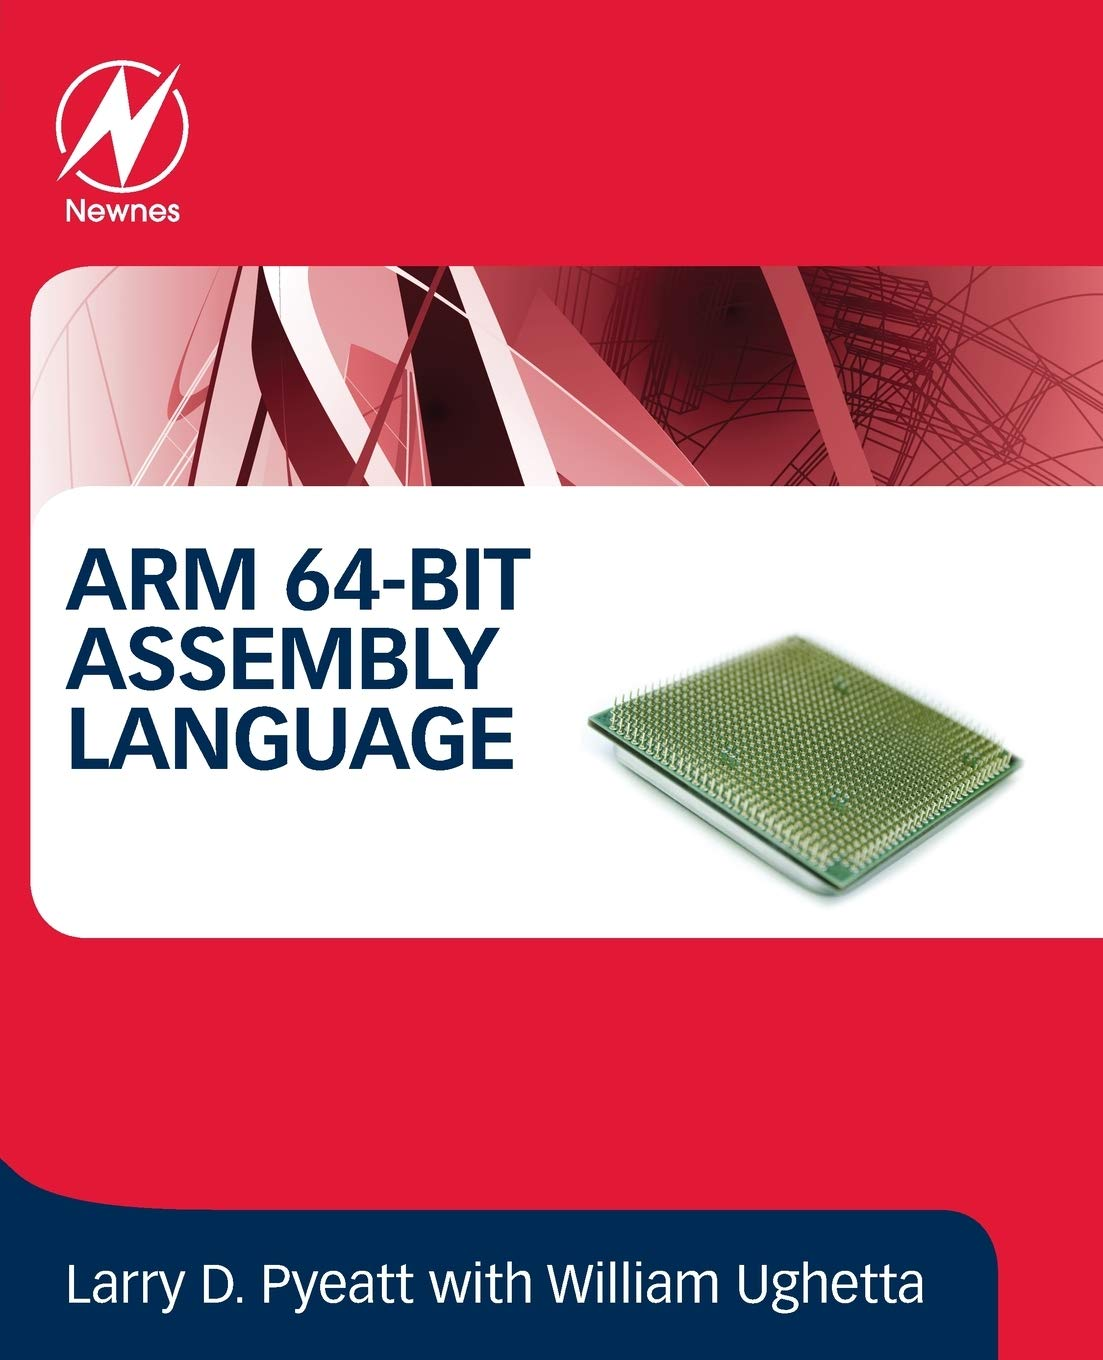 Image OfARM 64-Bit Assembly Language